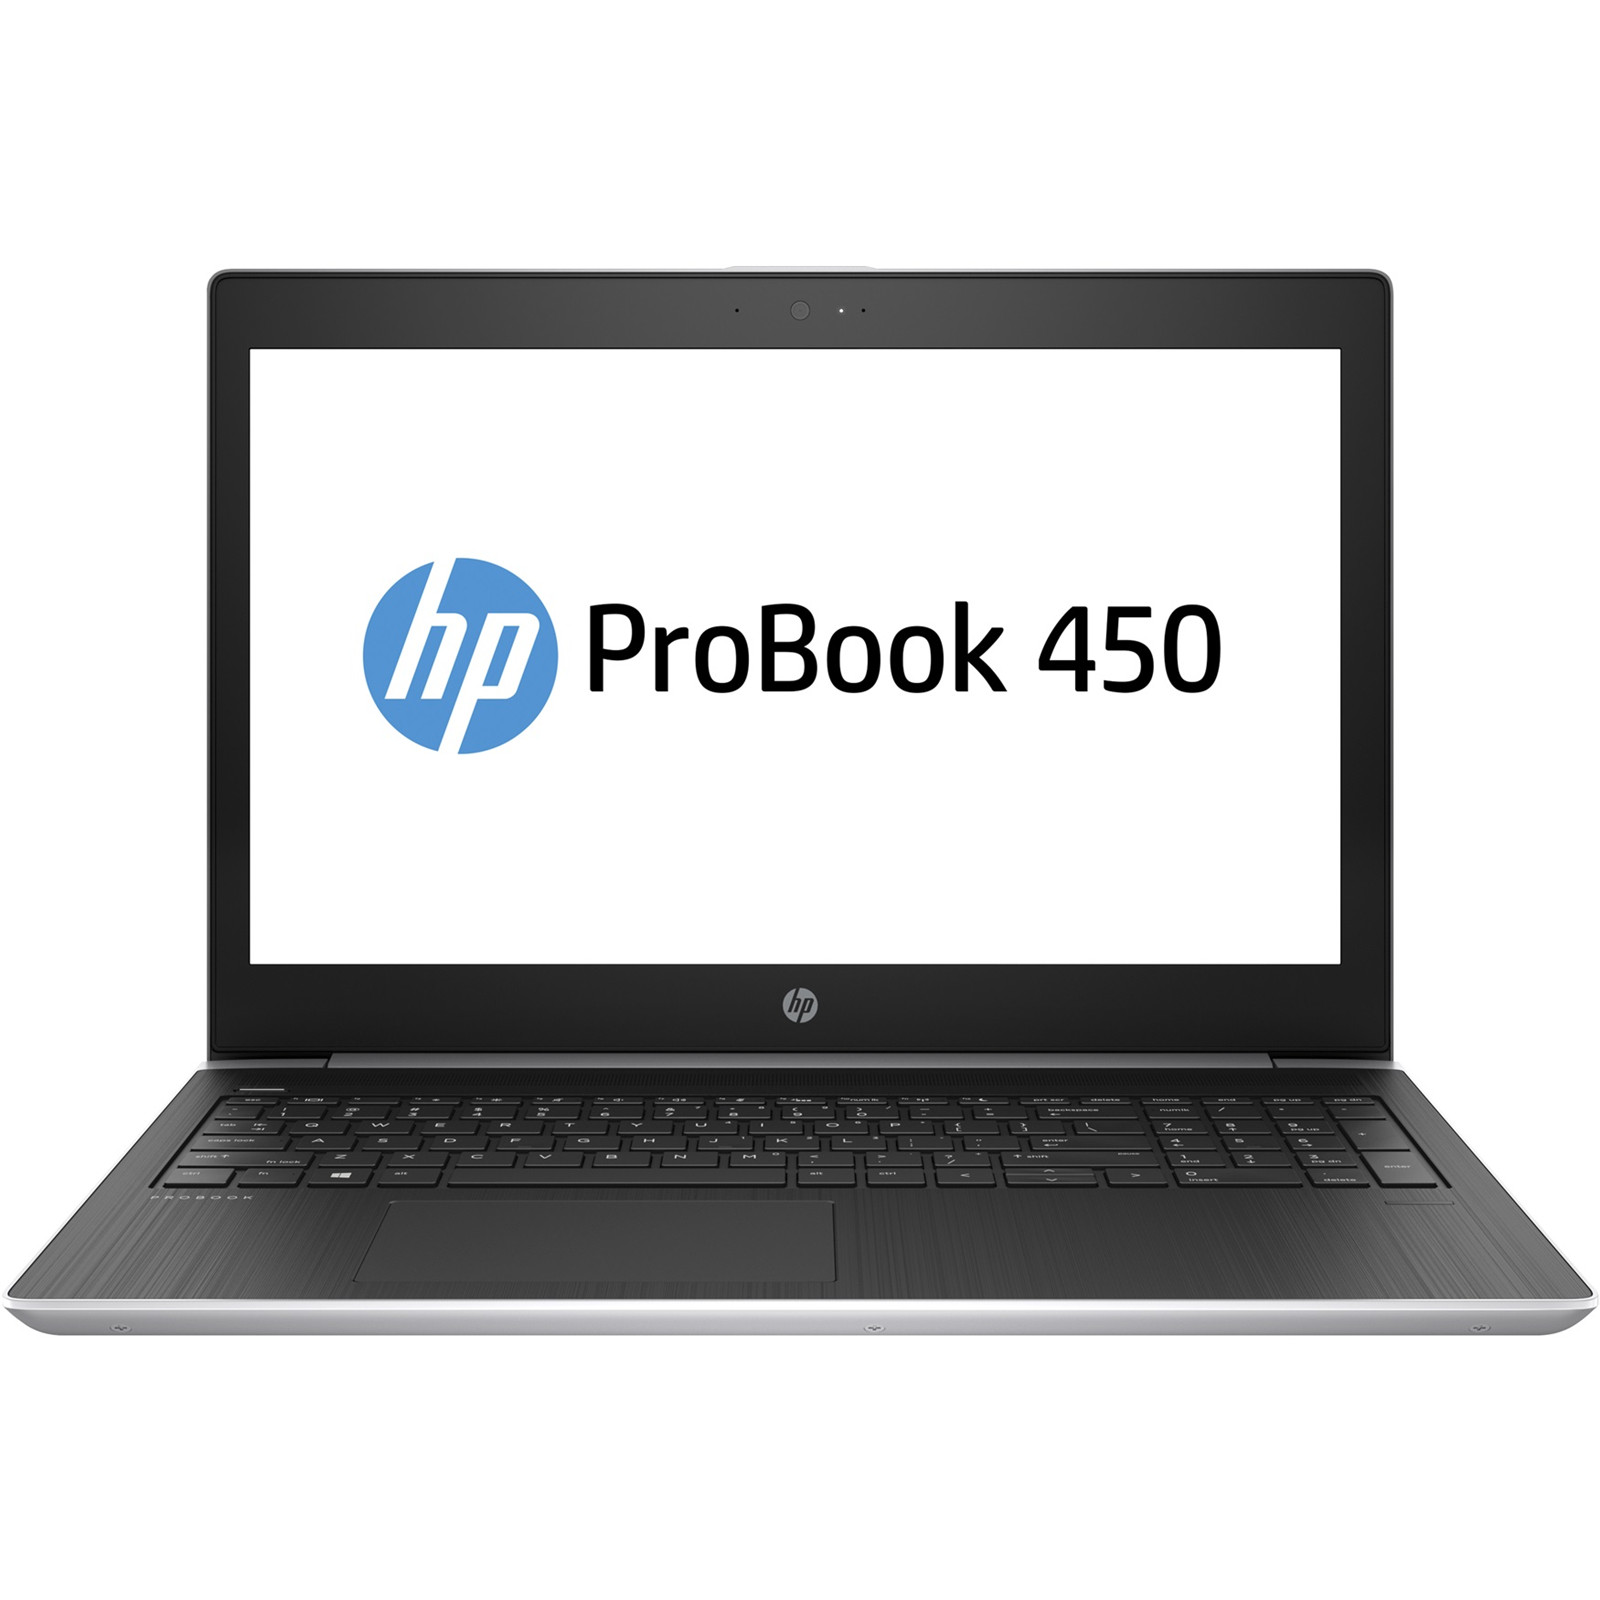 HP Probook 450 G5 Business Laptop